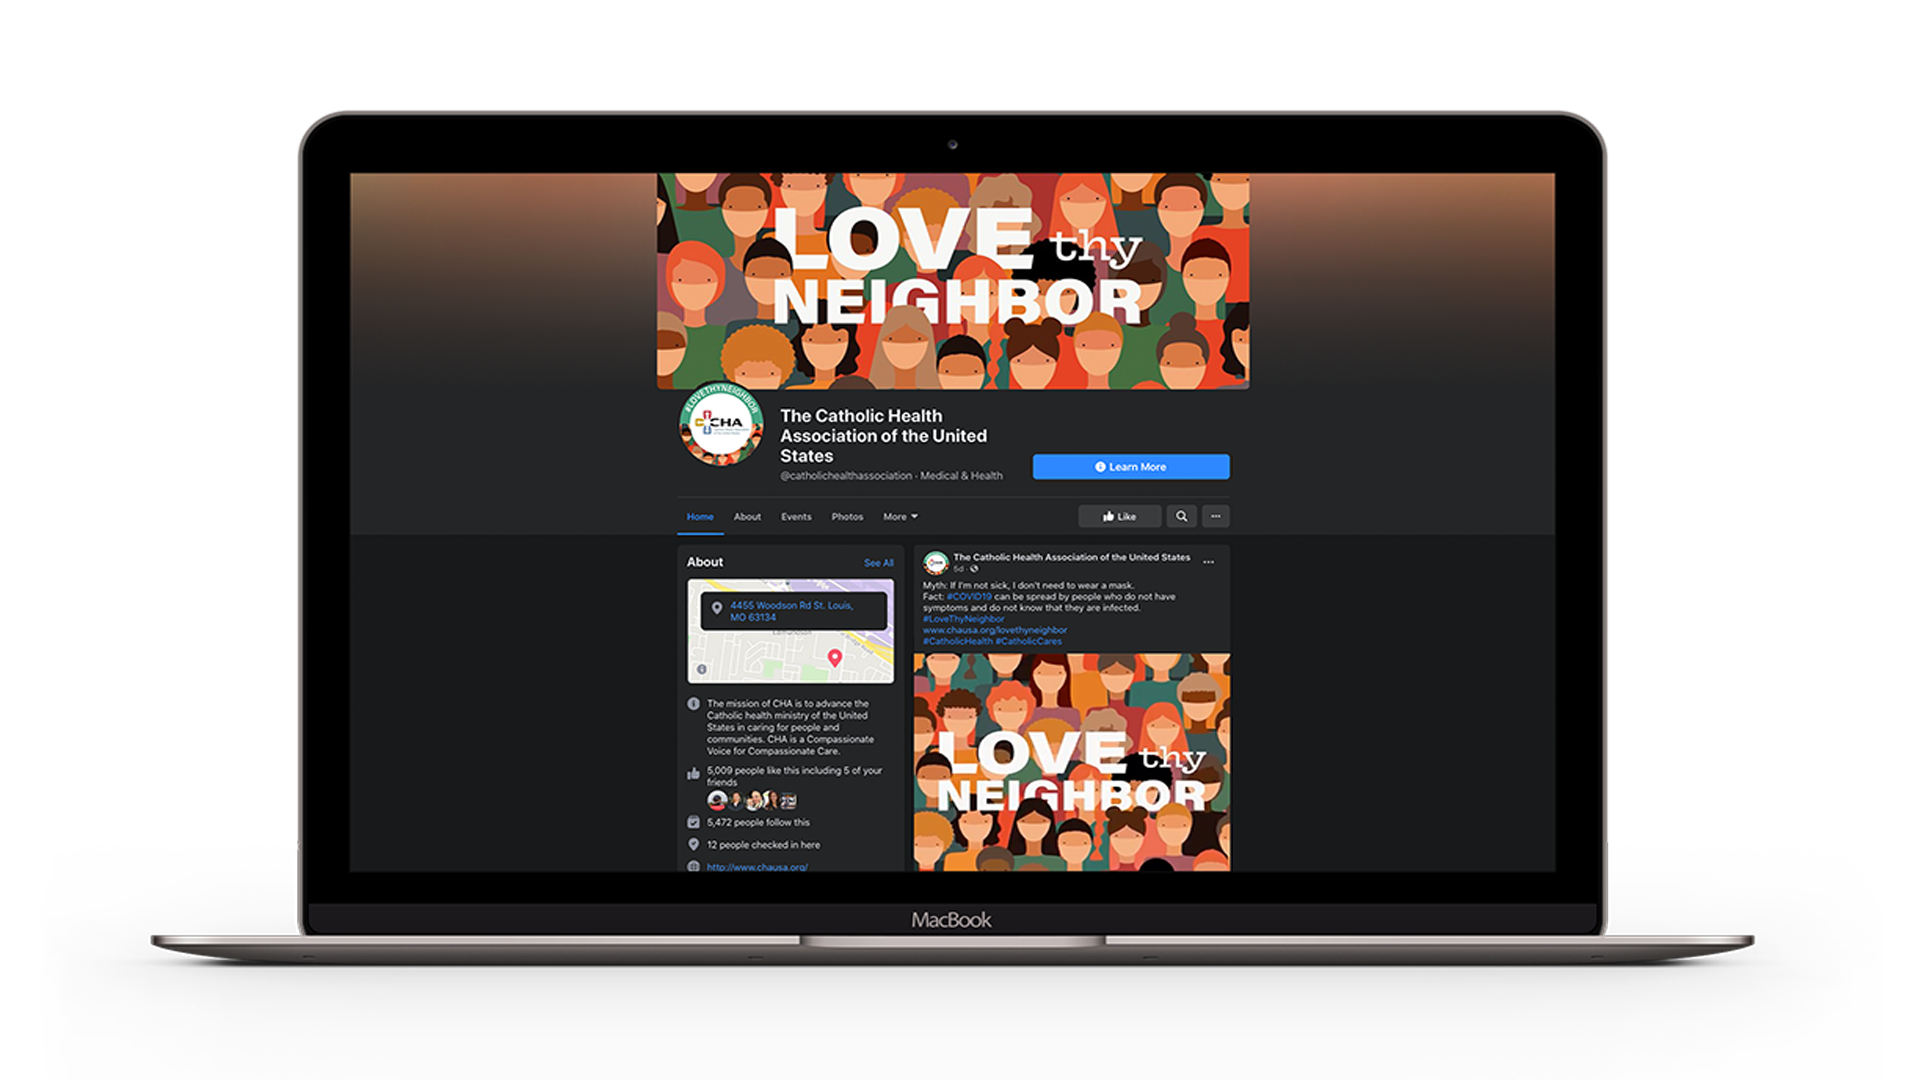 CHA Facebook Page for Love Thy Neighbor